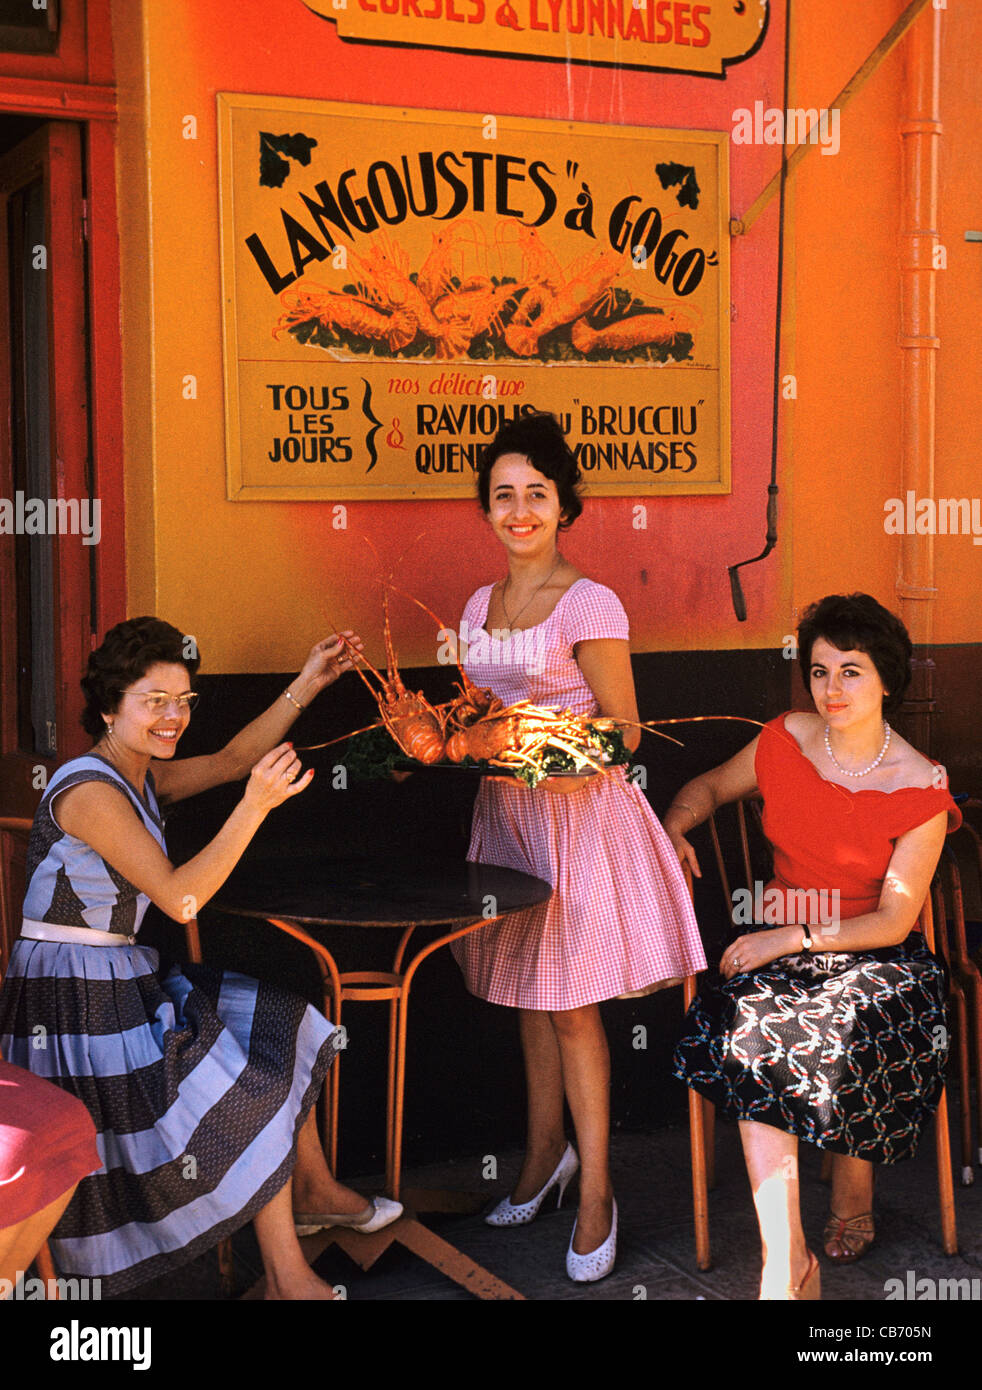 French Women 1950s or early 1960s Outside a Seafood Restaurant Specializing in Lobster, Porto Vecchio, Corsica, - Stock Image